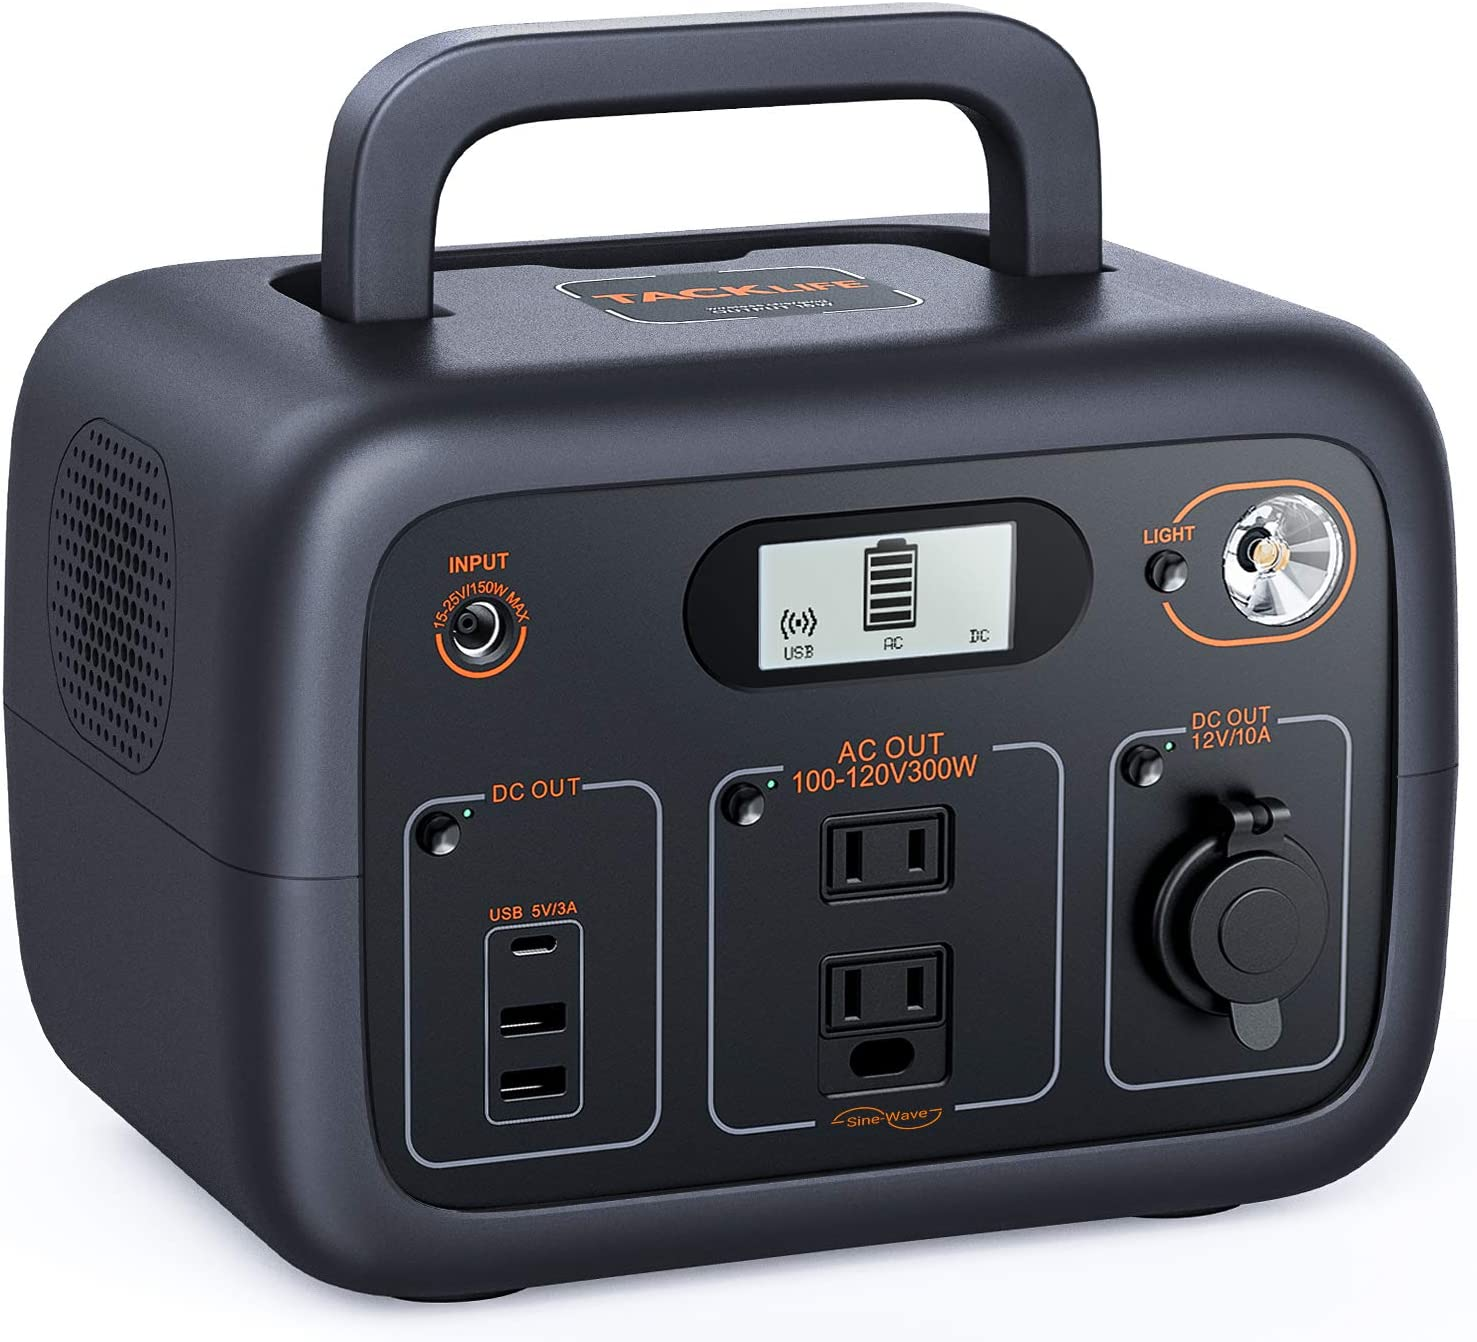 TACKLIFE 【Autumn Exclusive】 Power Station 300W, 300Wh Portable Solar Generator, Pure Sine Wave AC Outlets, Wireless Charging, 90000mAh Mobile Backup Battery for CPAP/Outdoor Camping/Outage Emergency : Garden & Outdoor